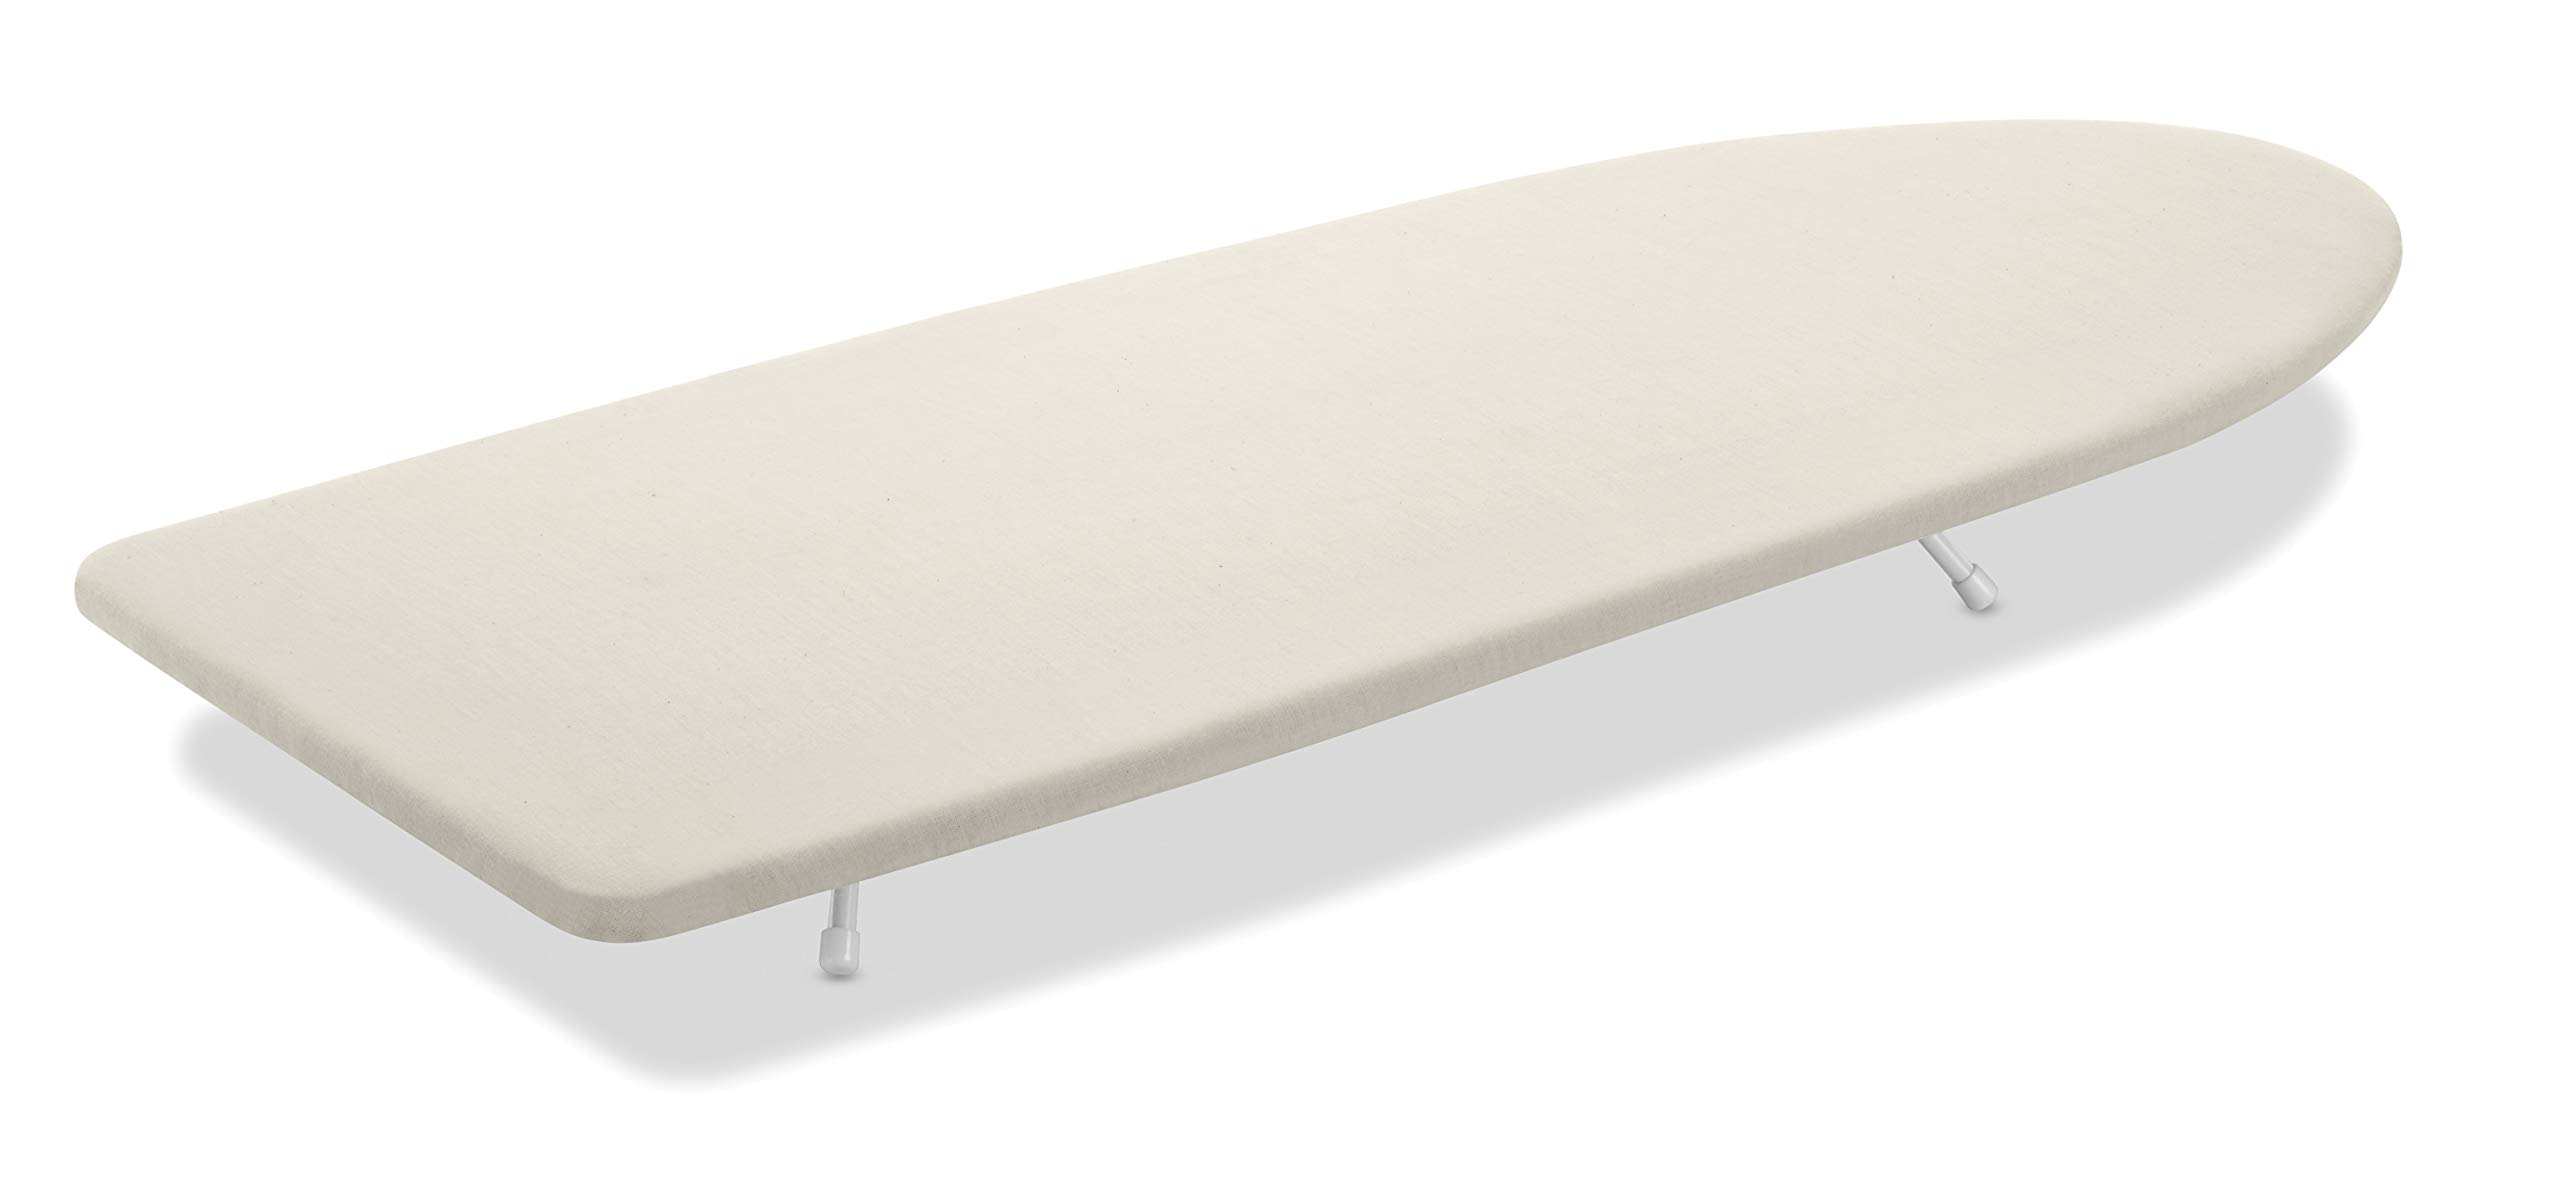 Whitmor Tabletop Ironing Board, Cream by Whitmor